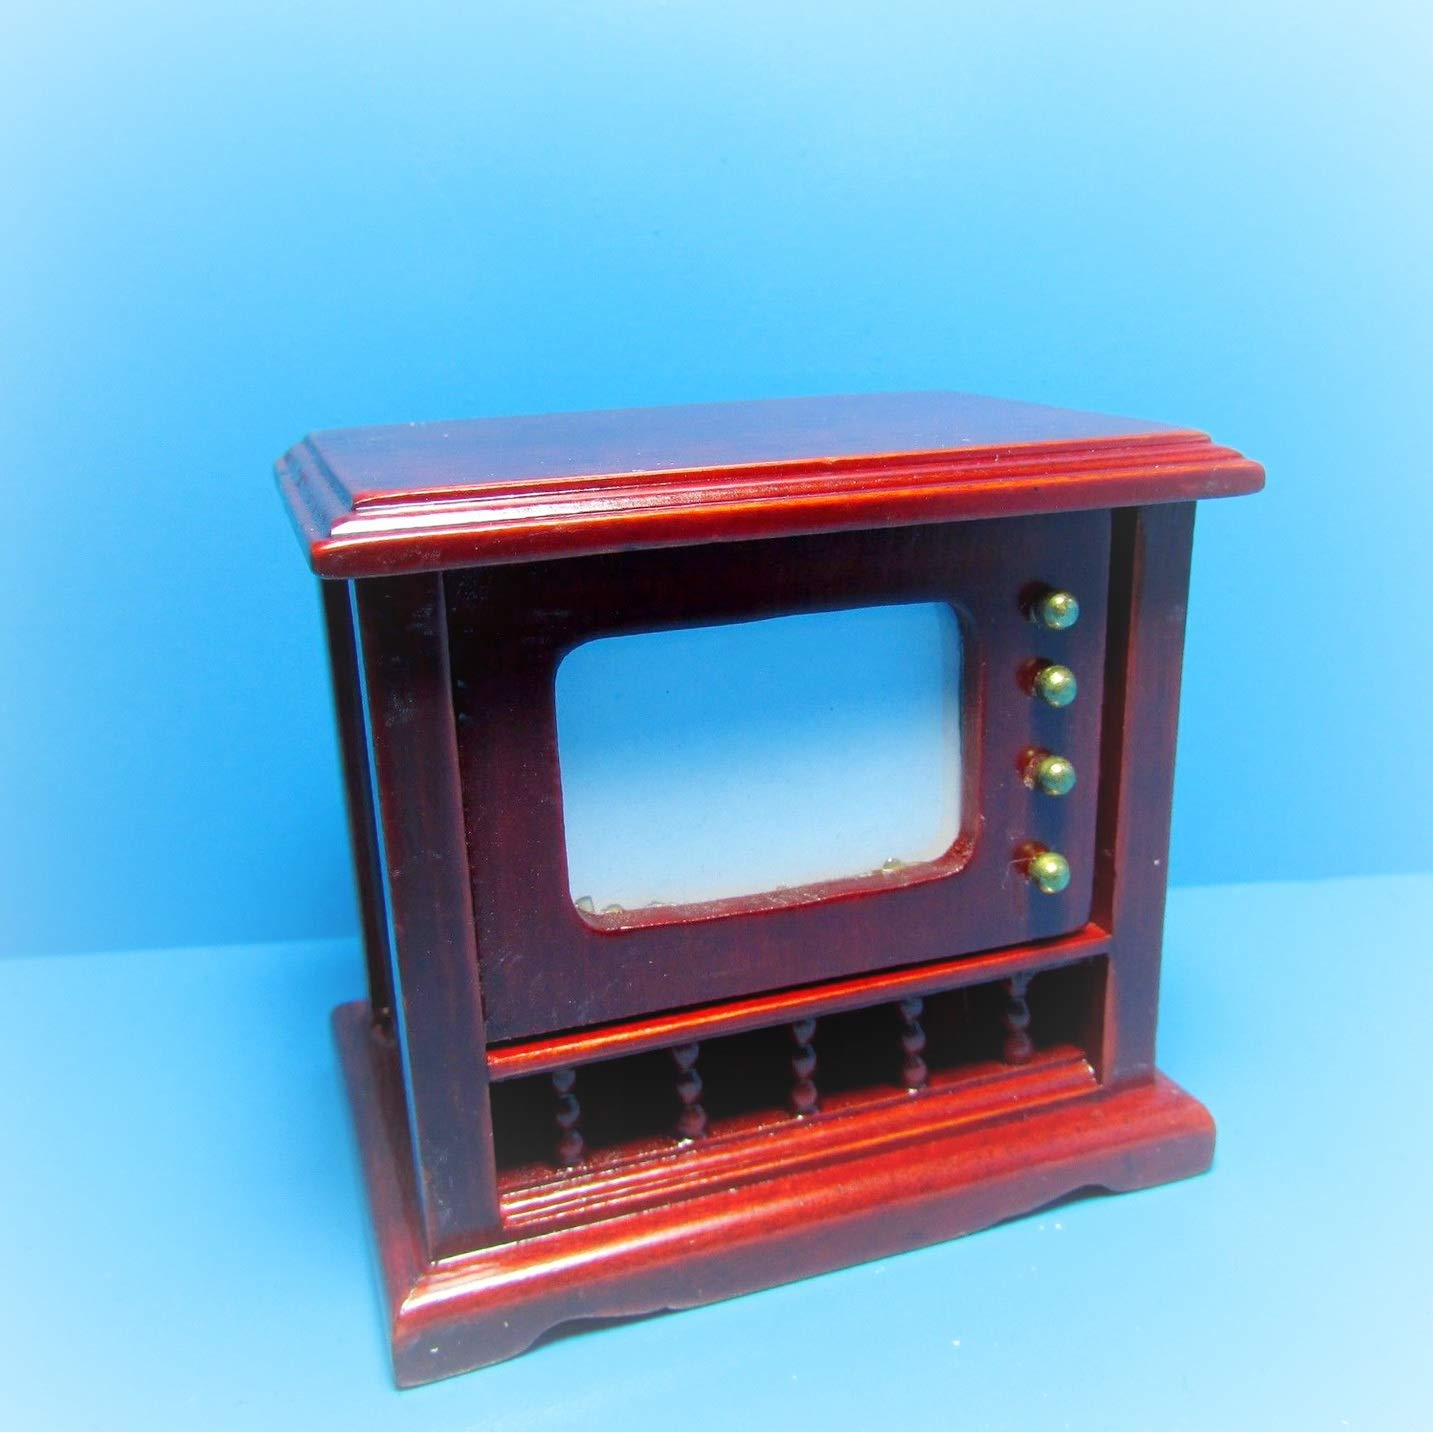 Dollhouse Console Television/TV in Mahogany KL2231 - Miniature Scene Supplies Your Fairy Garden - Doll House - Outdoor House Decor